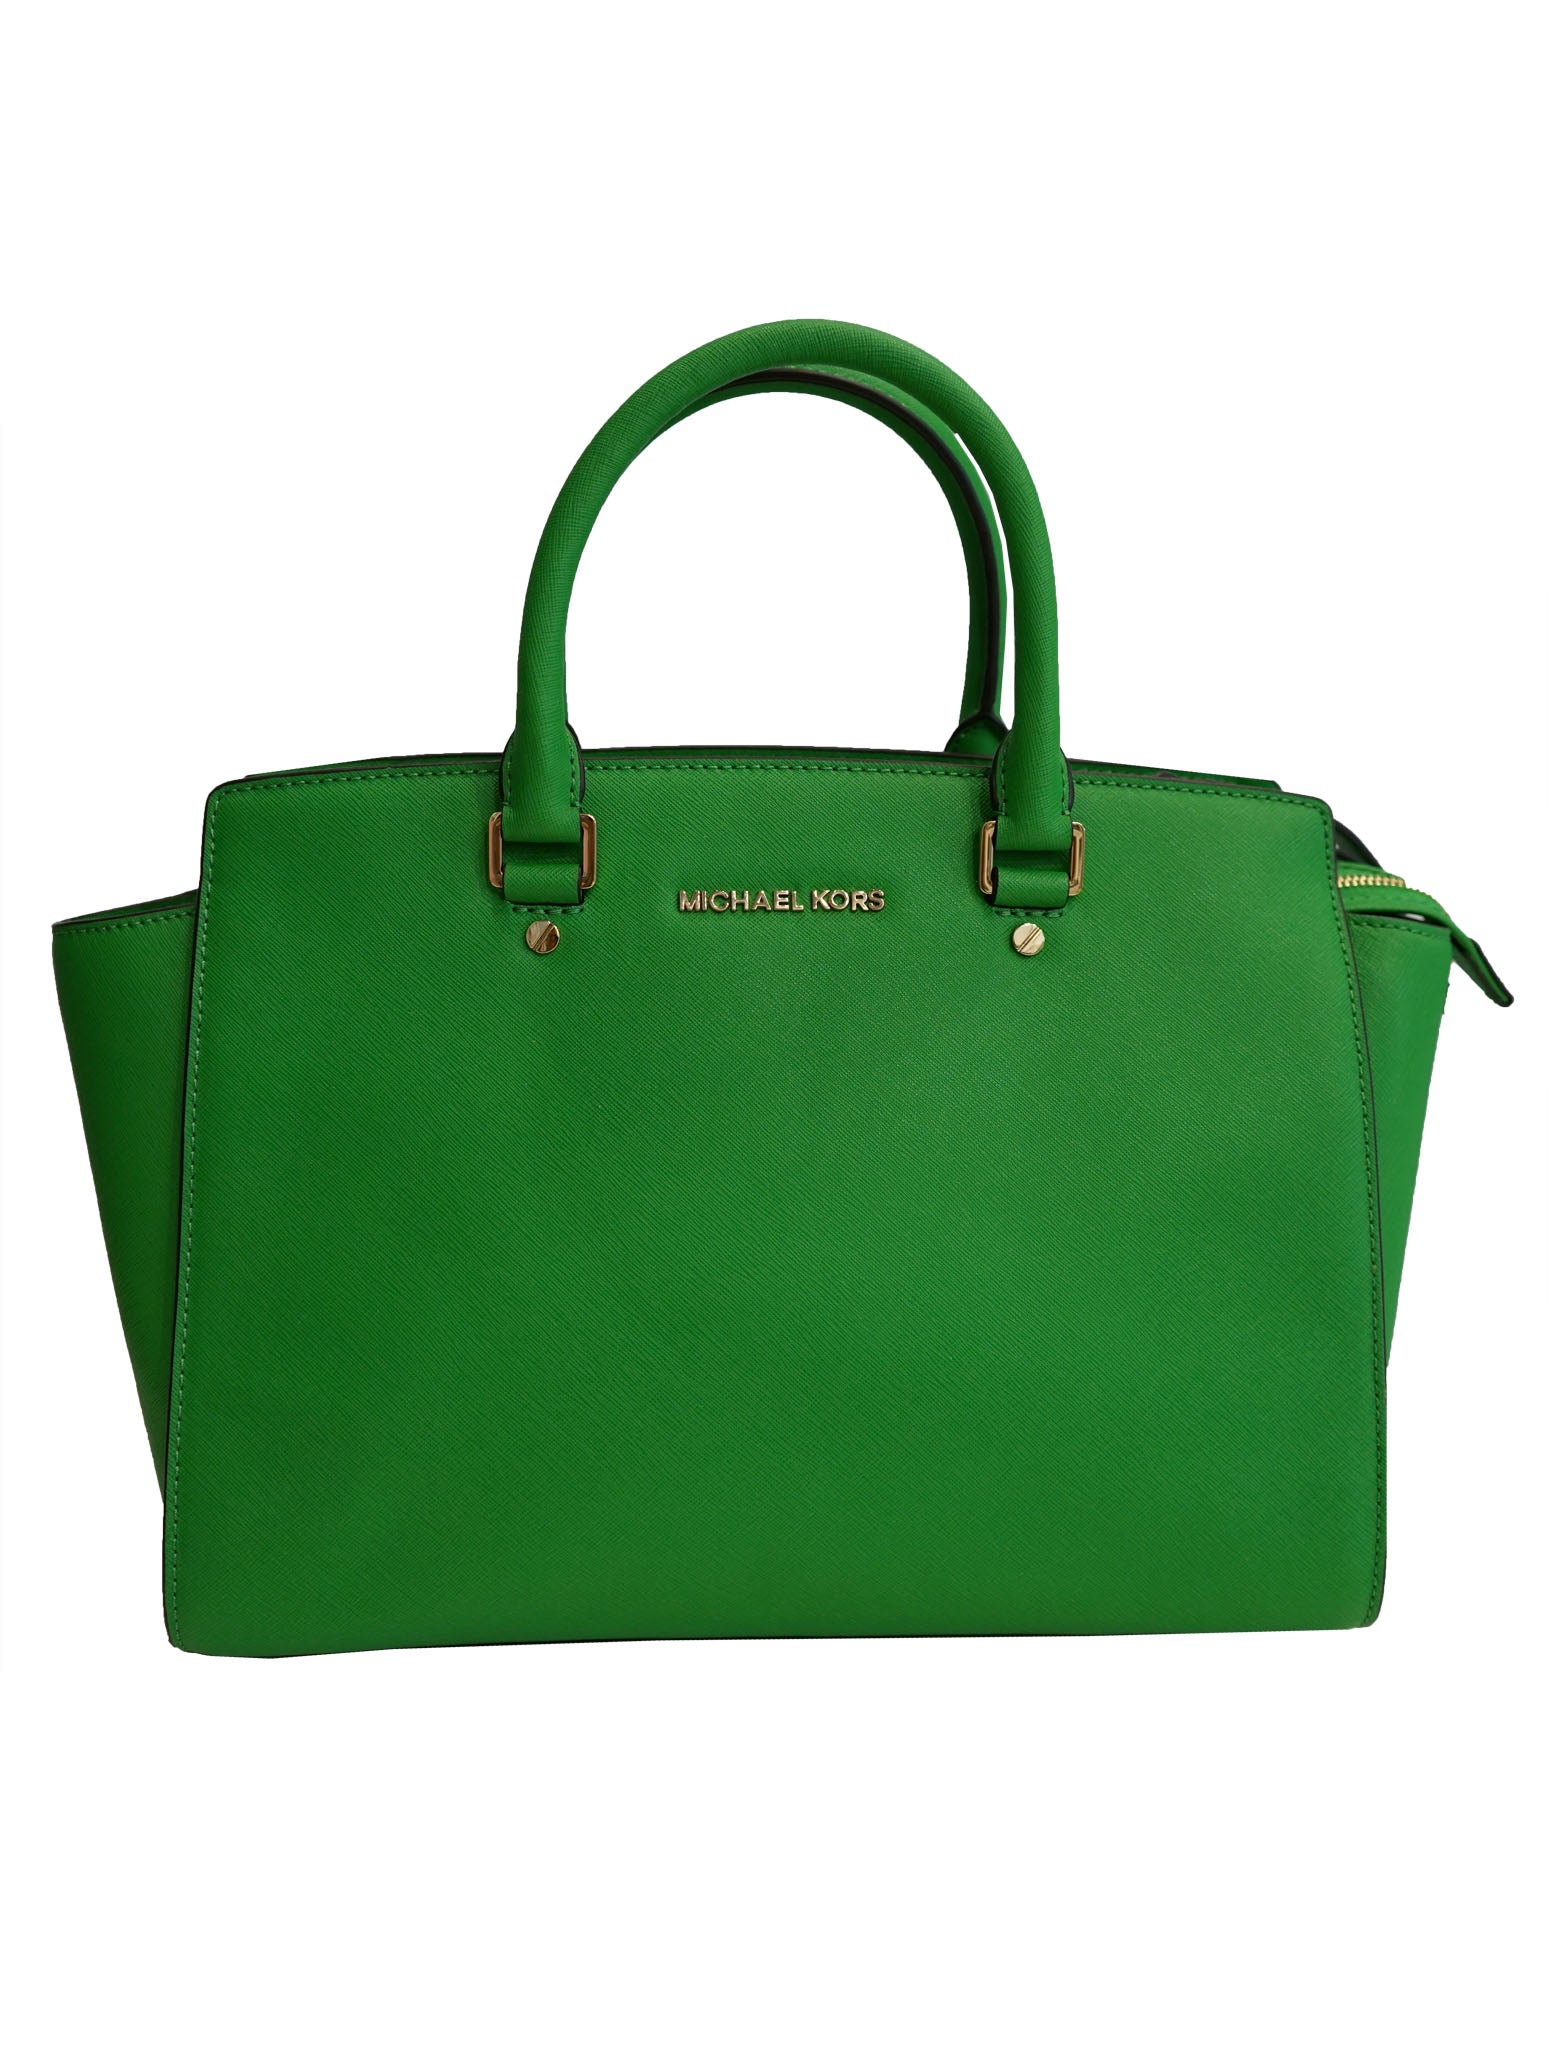 Michael Kors Bag, Ladies Designers Bag